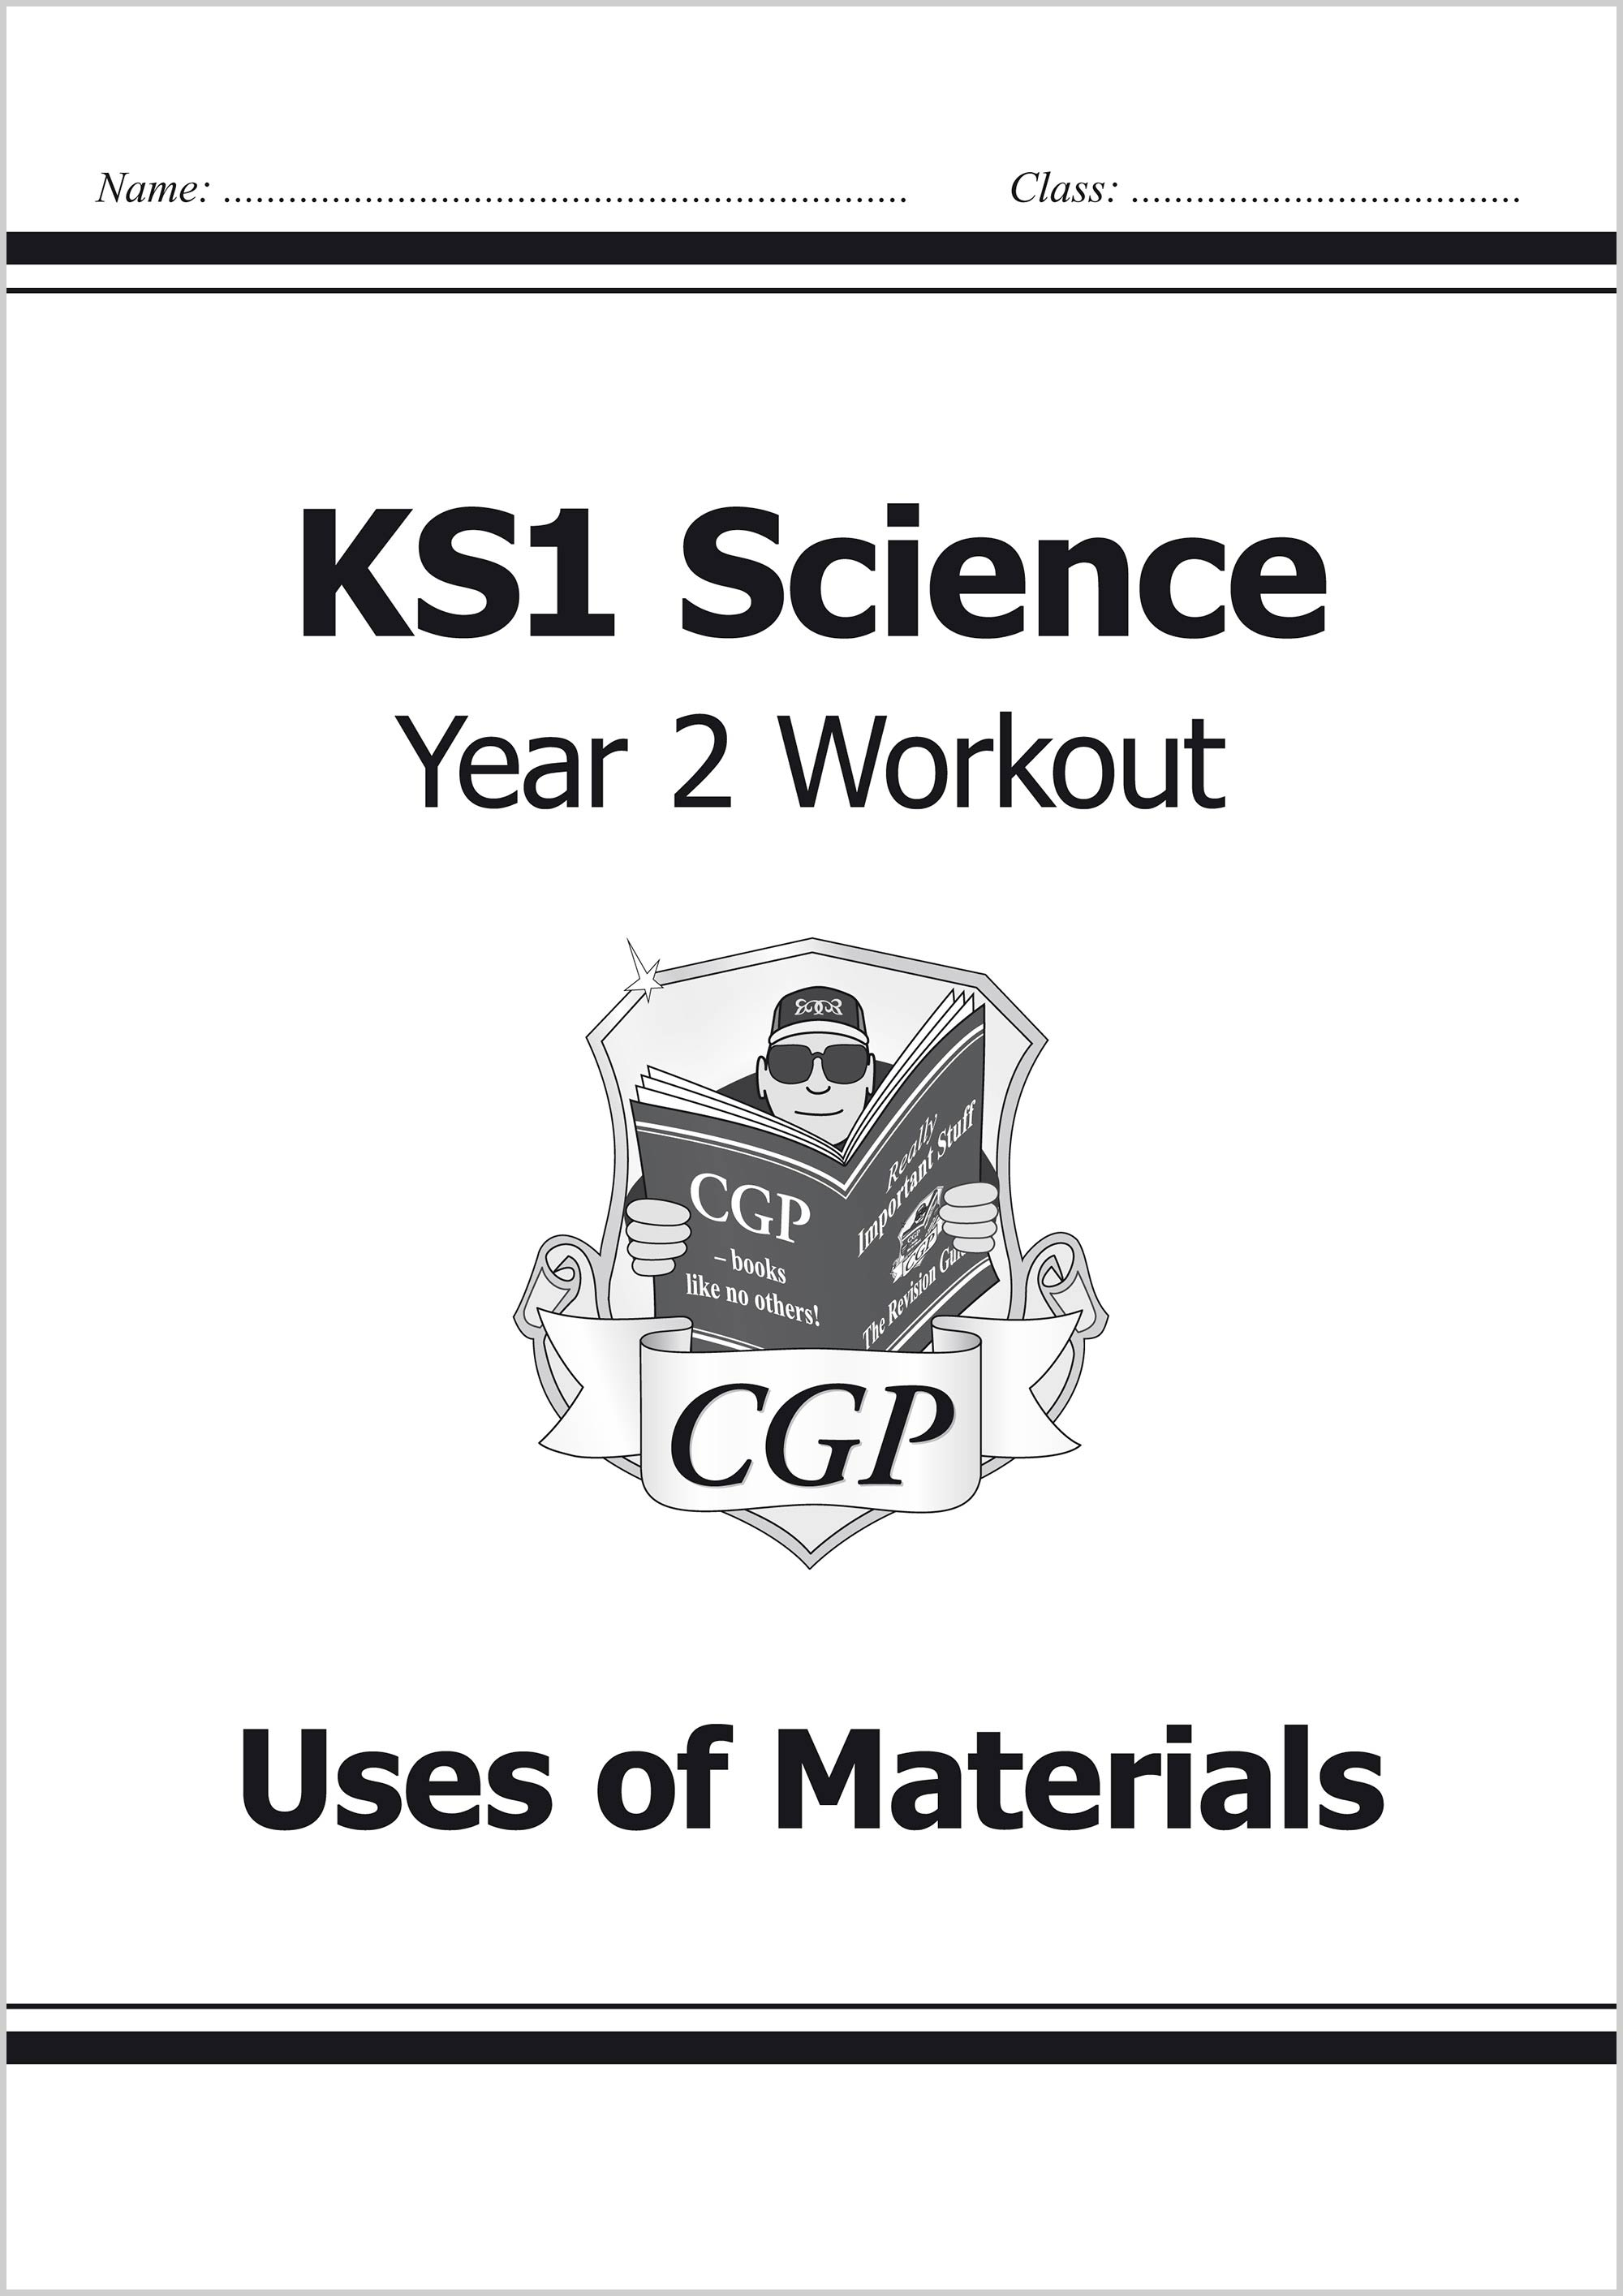 S2D11 - KS1 Science Year Two Workout: Uses of Materials